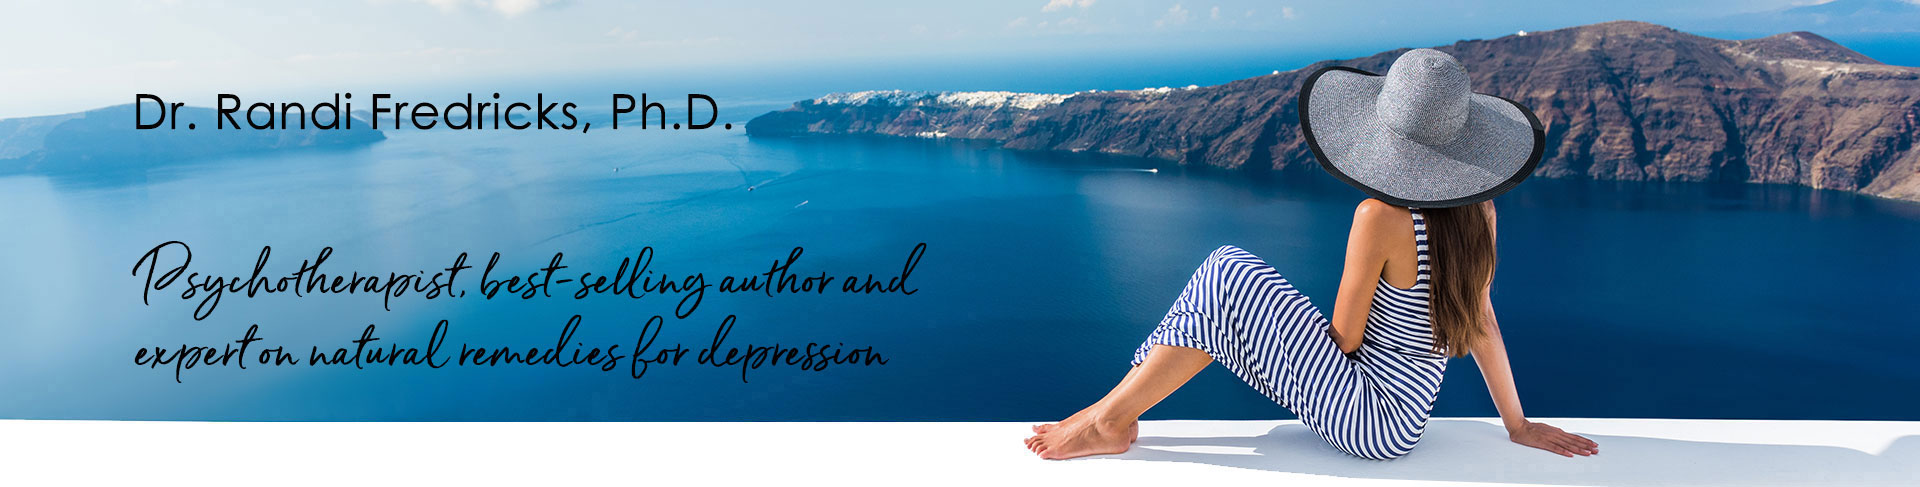 San Jose Depression Counseling and Therapy